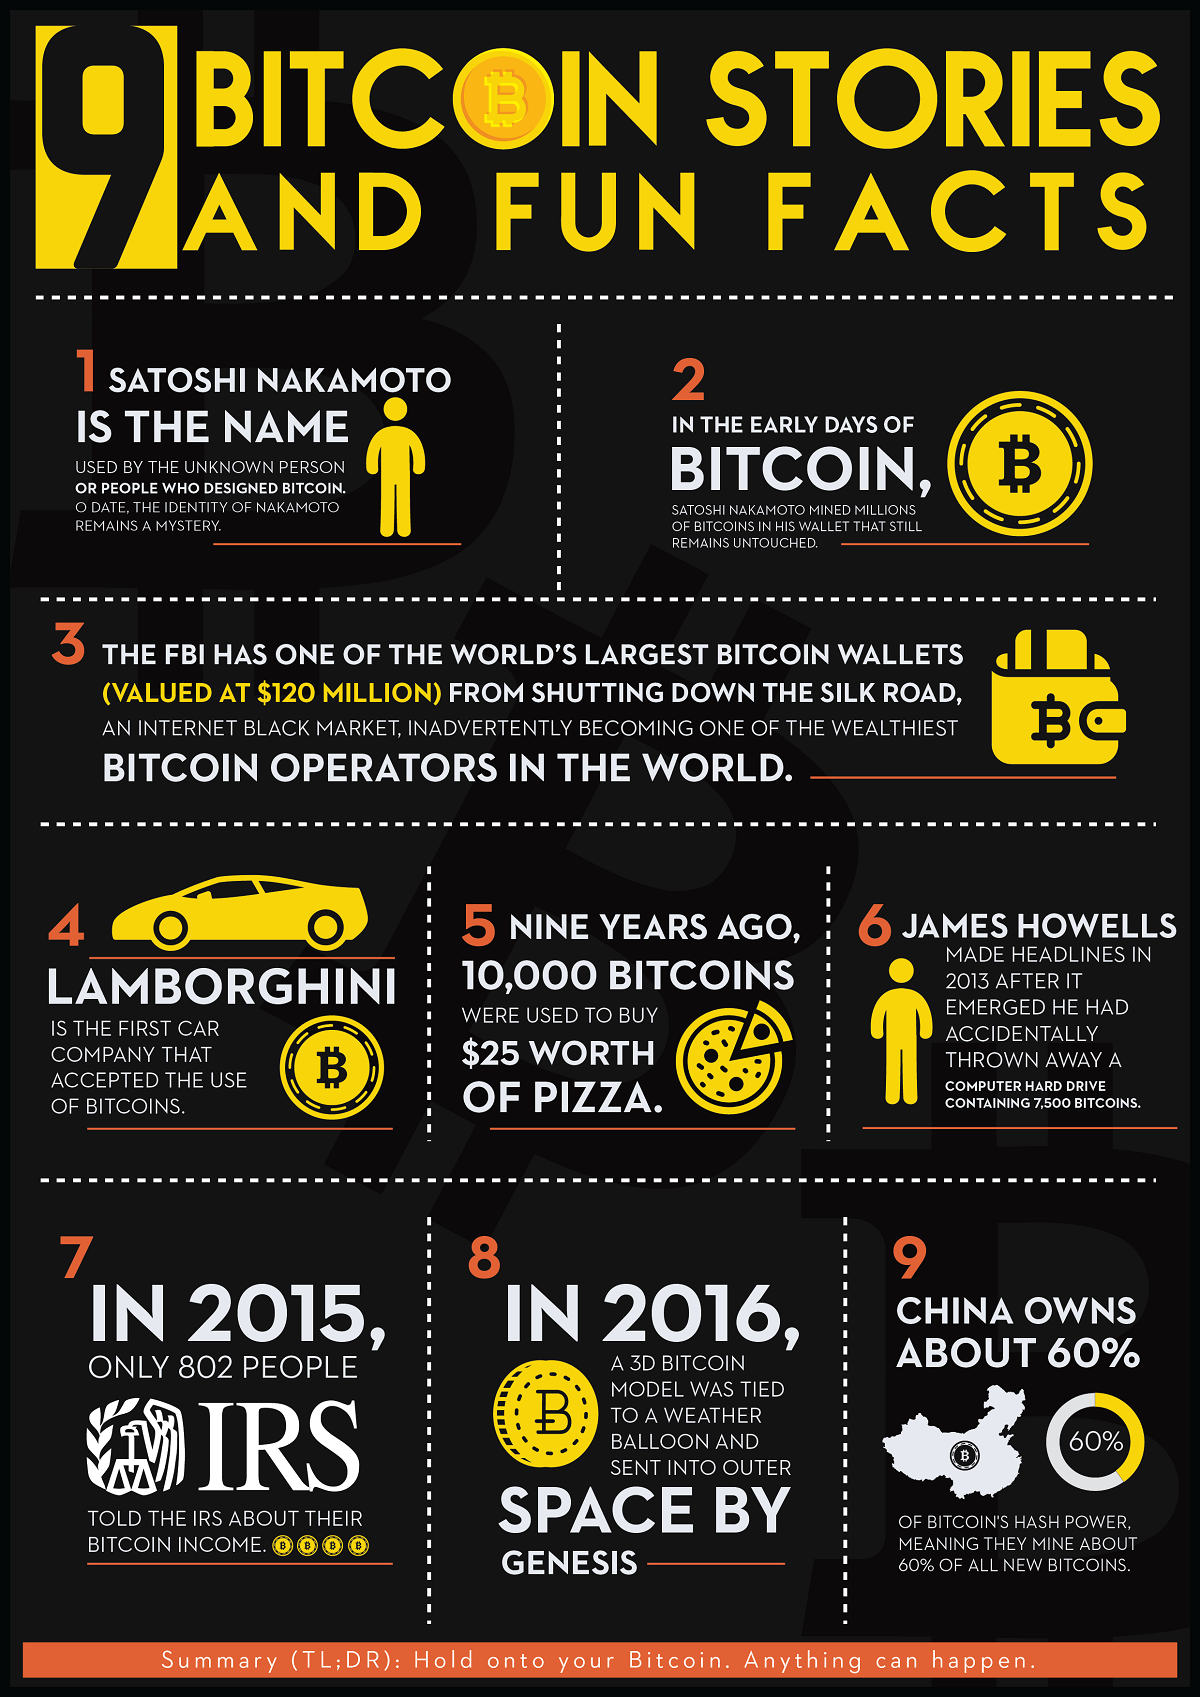 9 Bitcoin Stories and Fun Facts